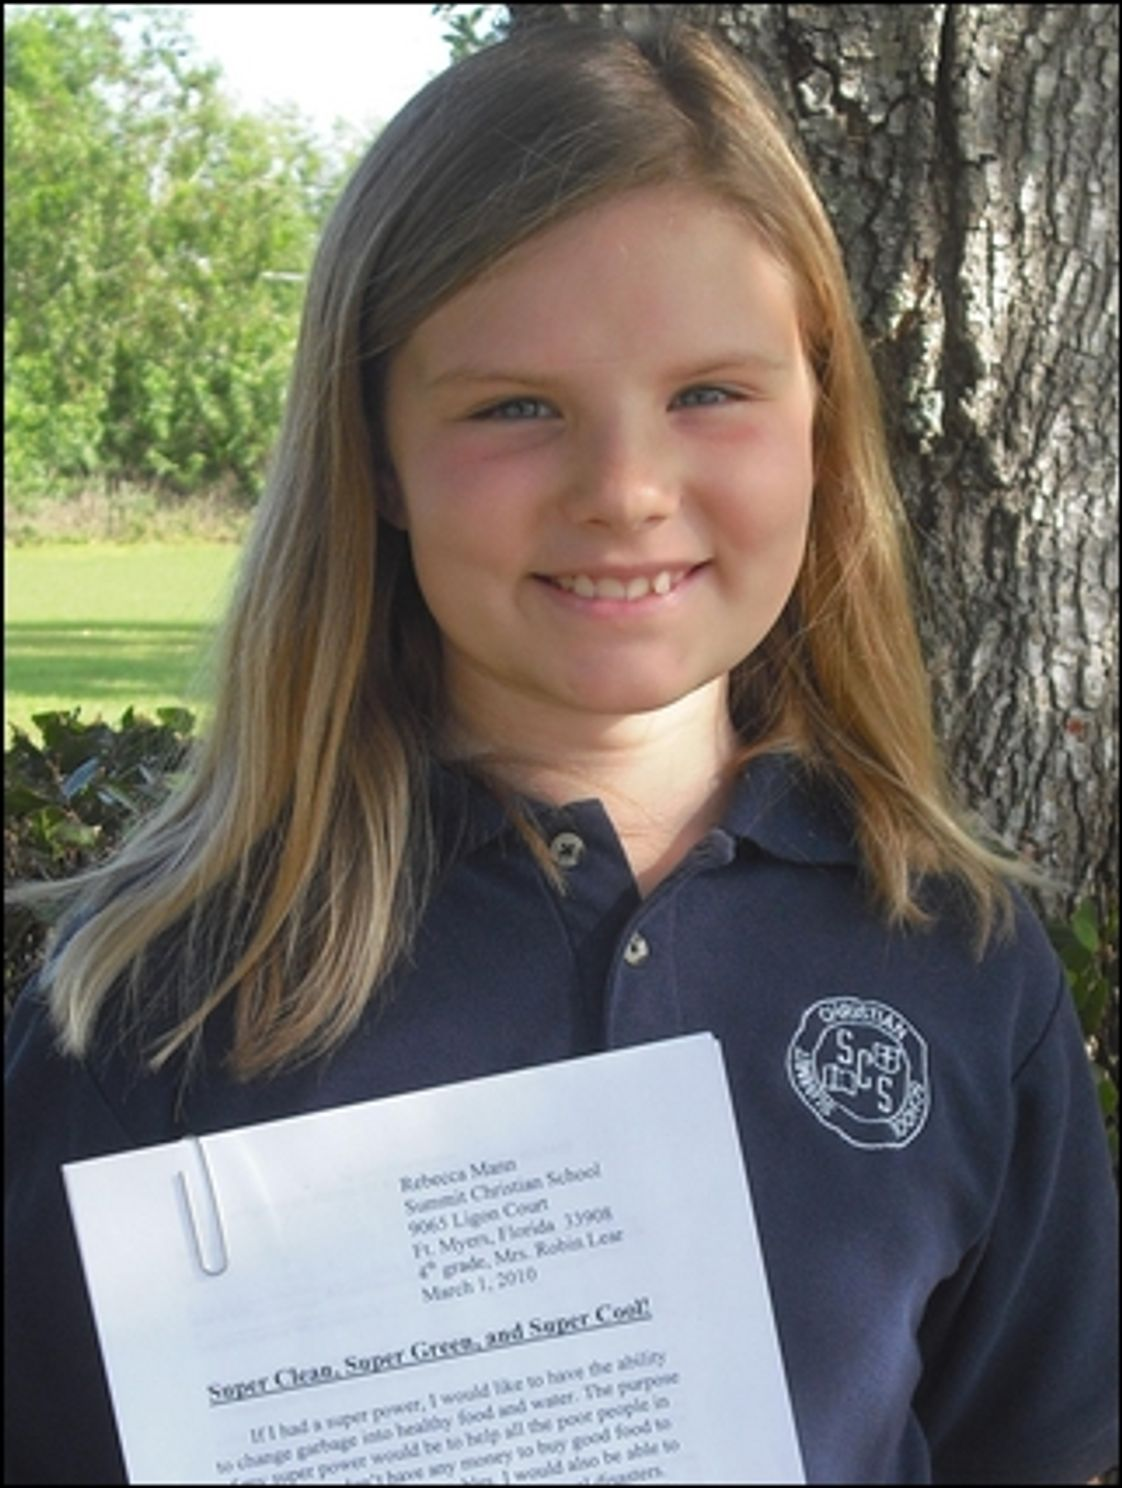 Summit Christian School Photo - A Summit 4th grader's essay was chosen over 9,000 entries to receive the 2010 Bic Pen Essay Contest first prize in the southeast division.